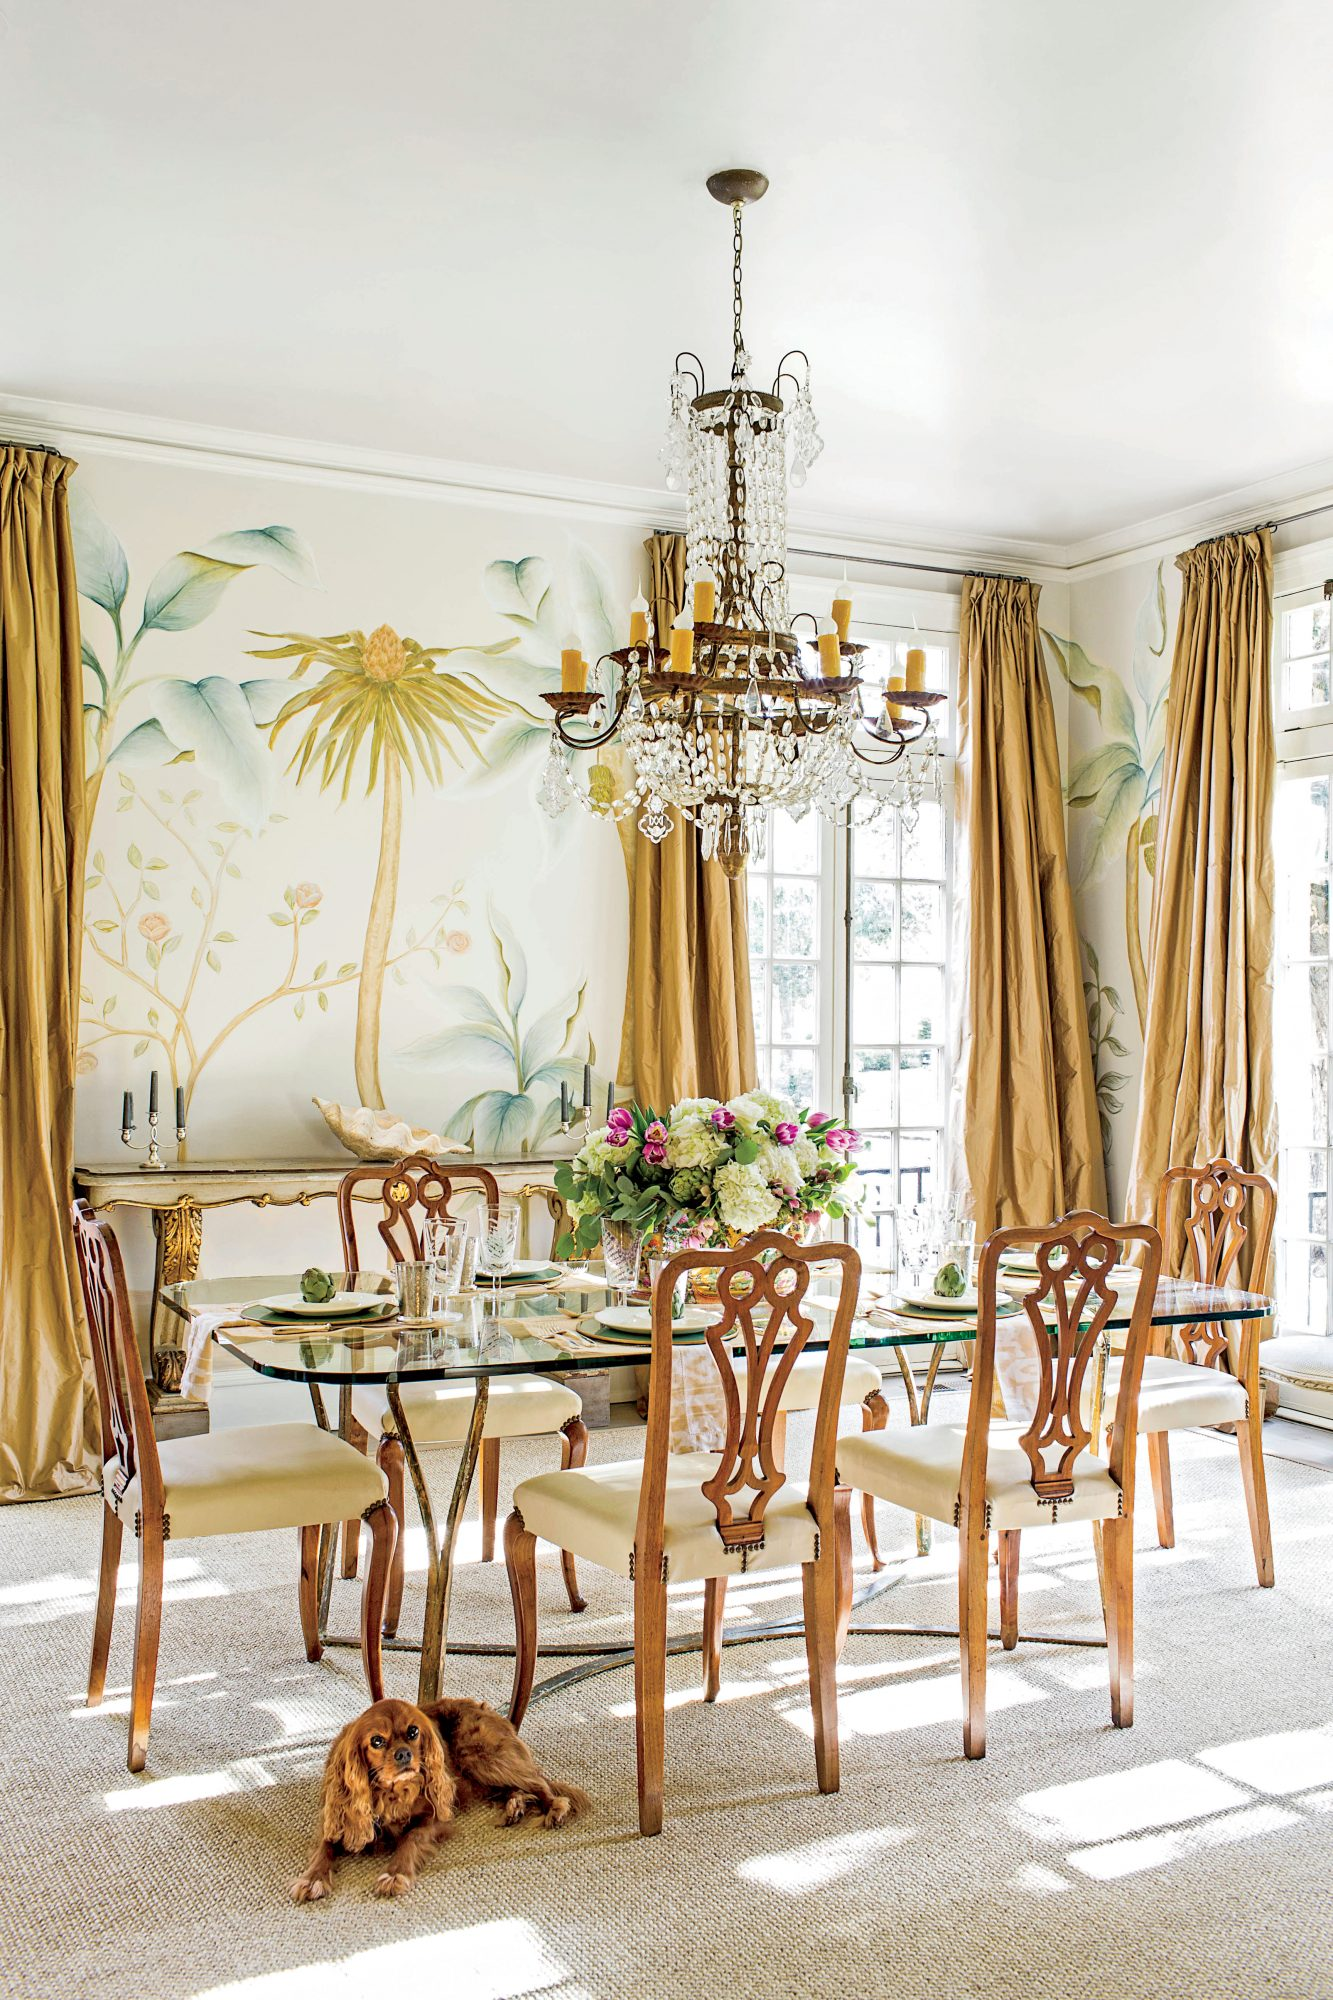 New Orleans Dining Room with Palm Tree Mural